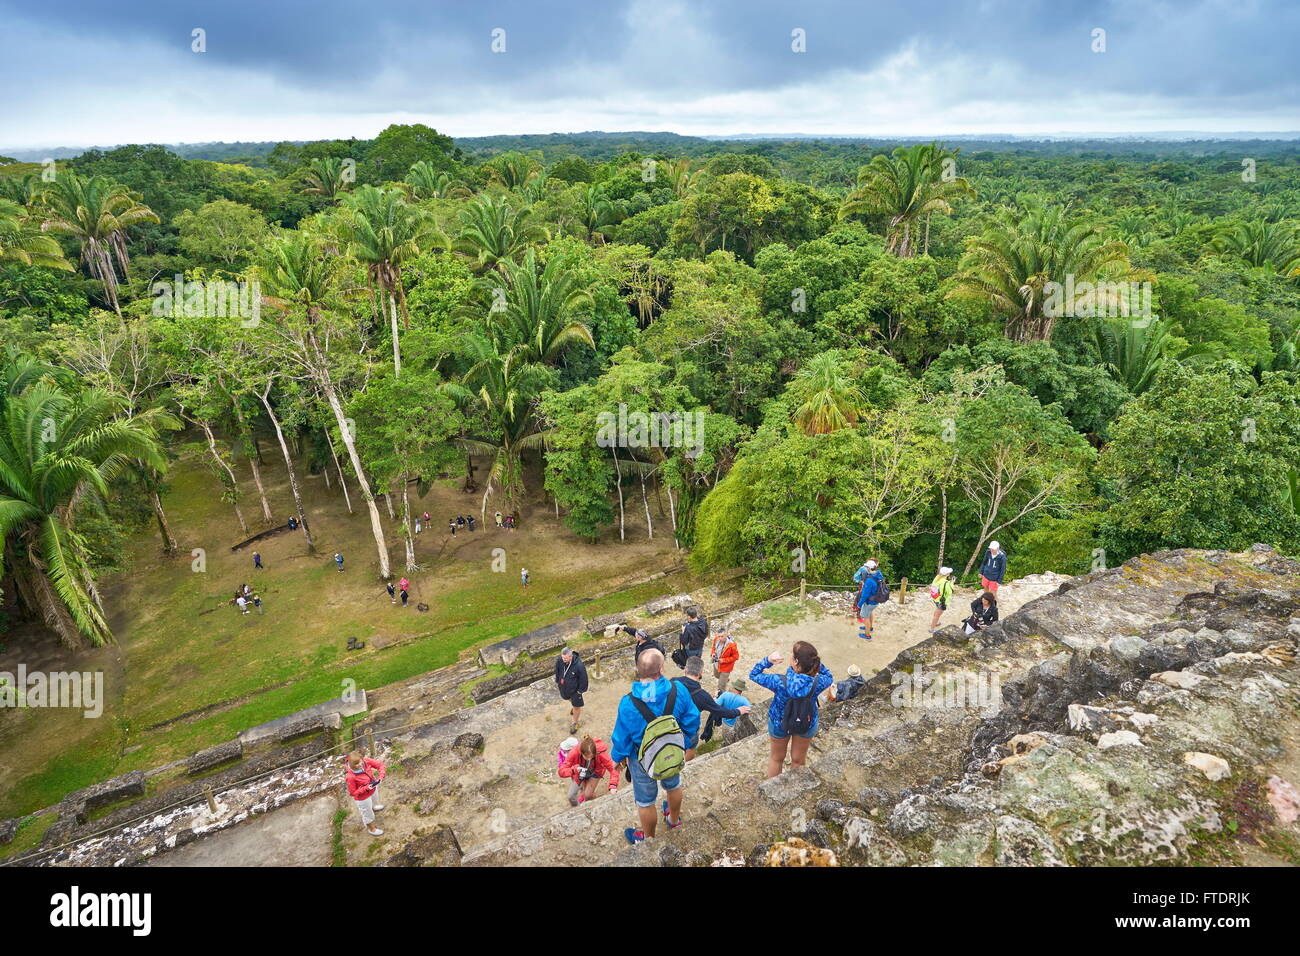 Tourists admiring the view of Yucatan from the top of High Temple, Ancient  Maya Ruins, Lamanai, Belize - Stock Image